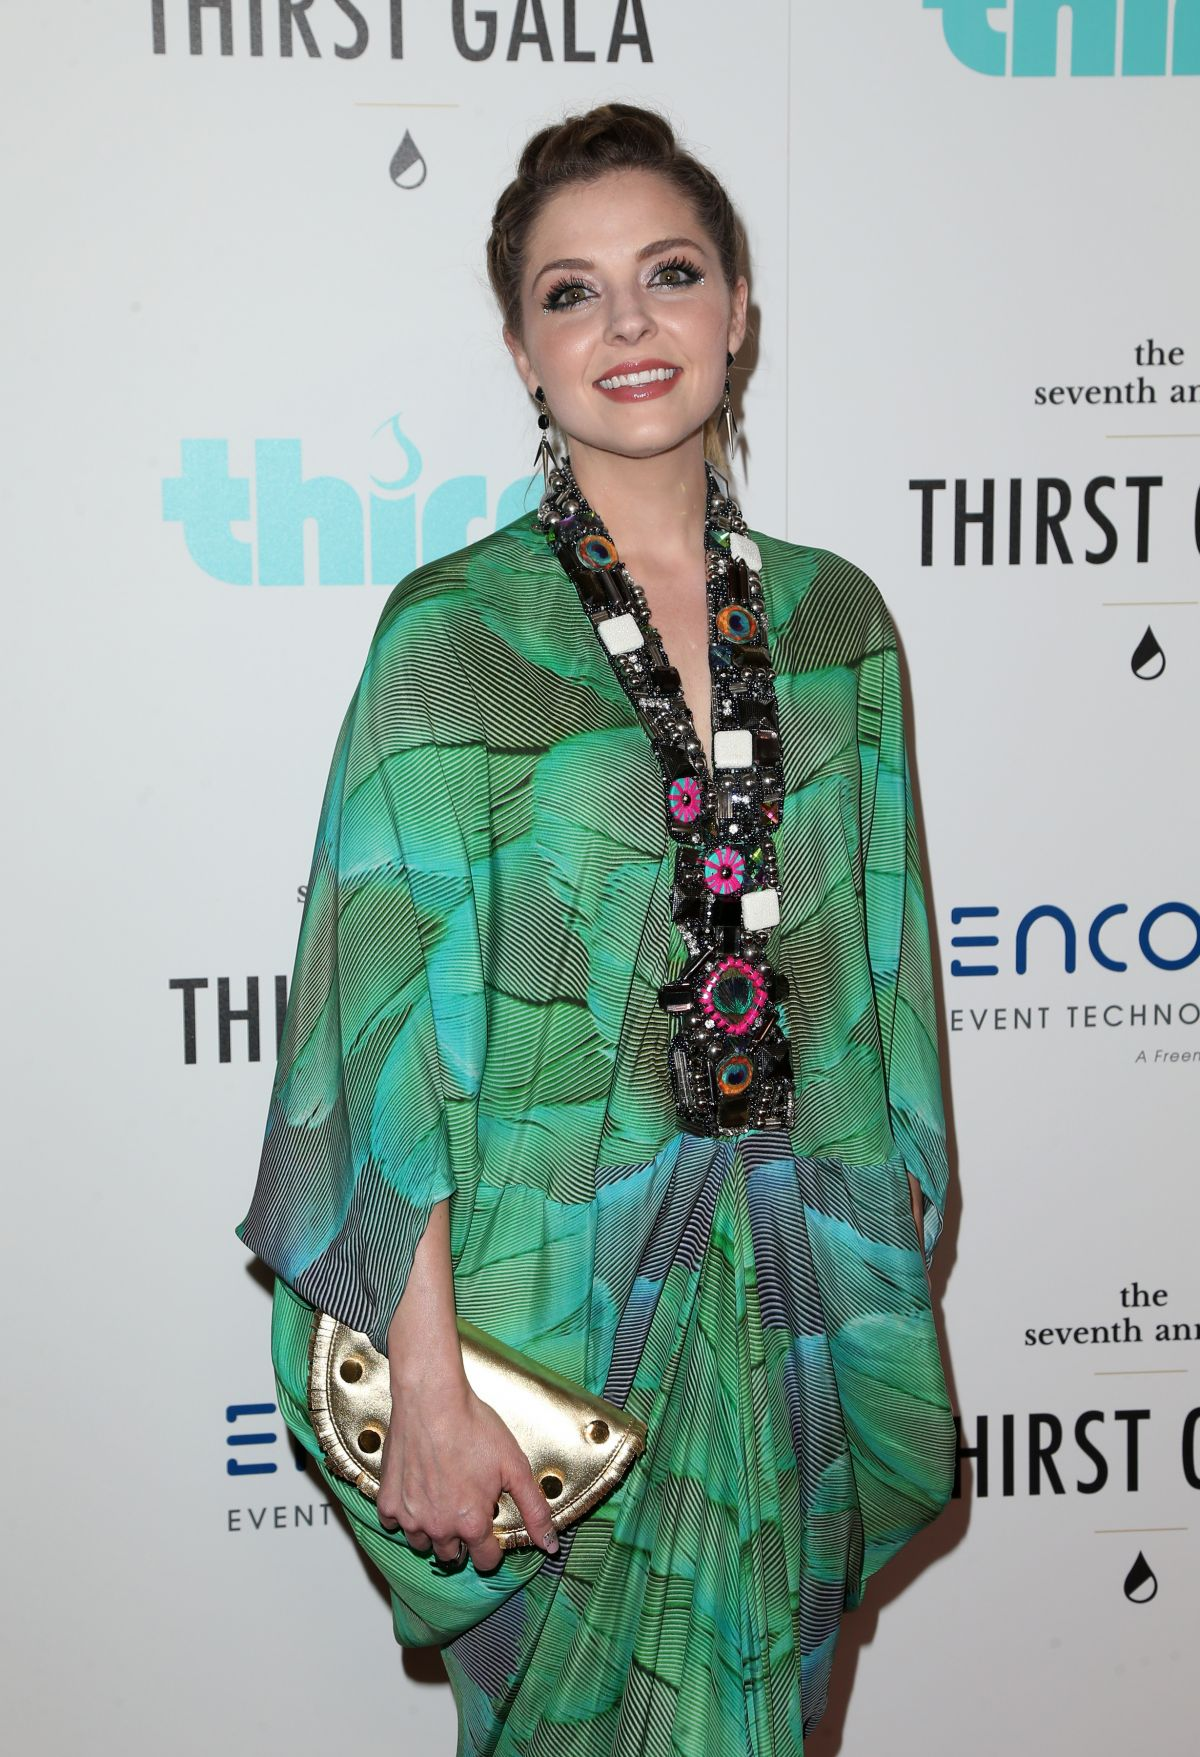 JEN LILLEY at 7th Annual Thirst Gala in Beverly Hills 06/13/2016